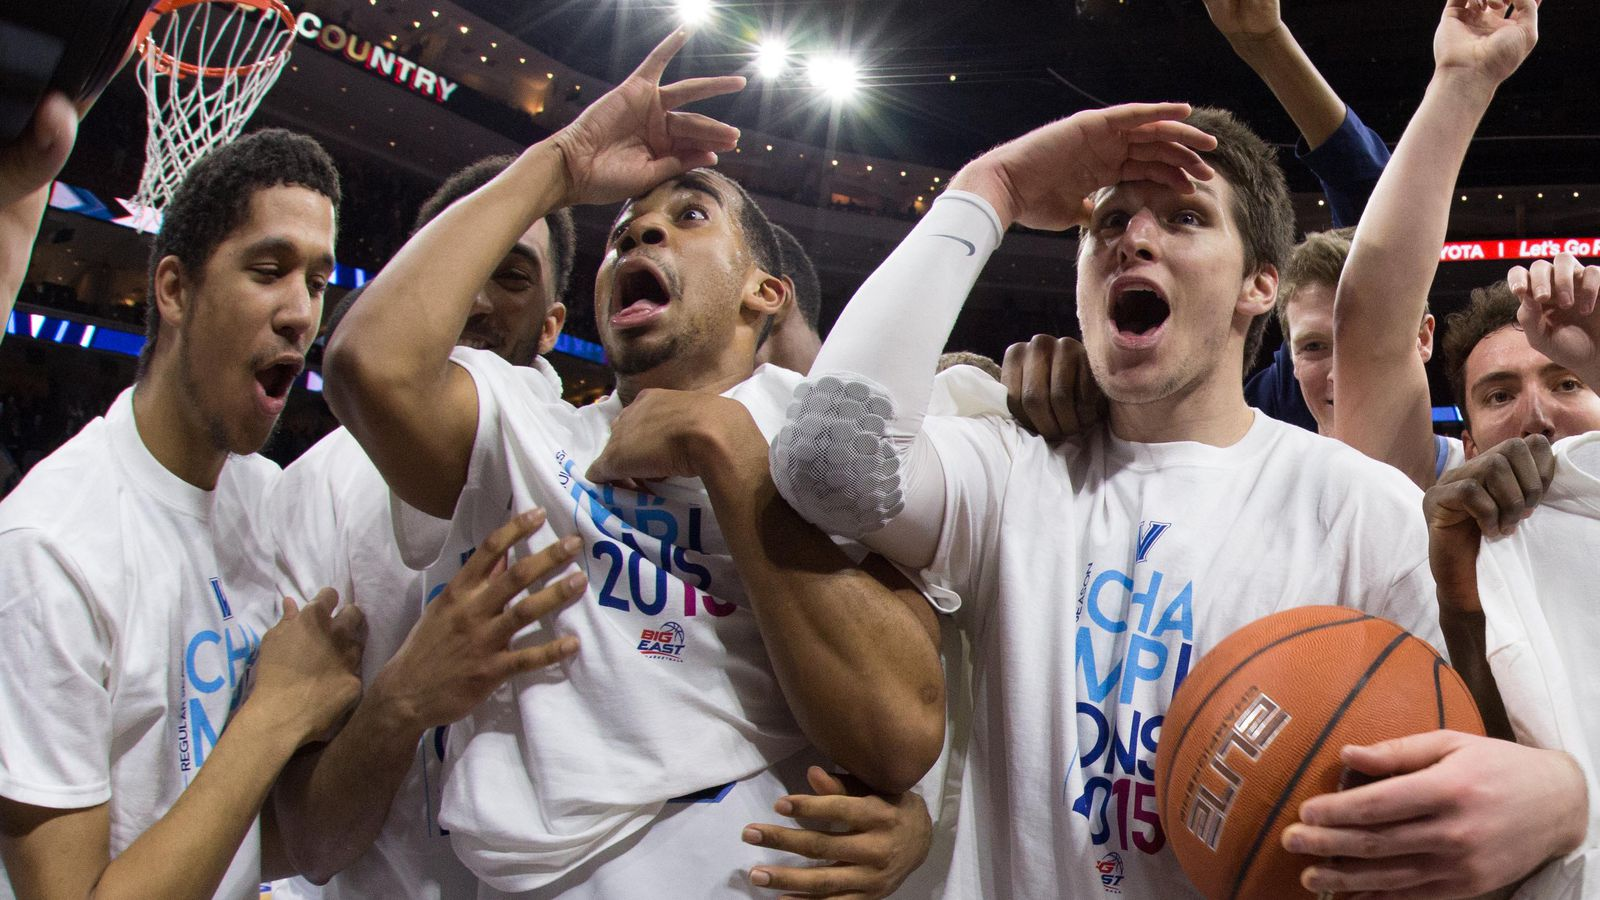 NCAA bracket predictions 2015 Picks based on NBA players